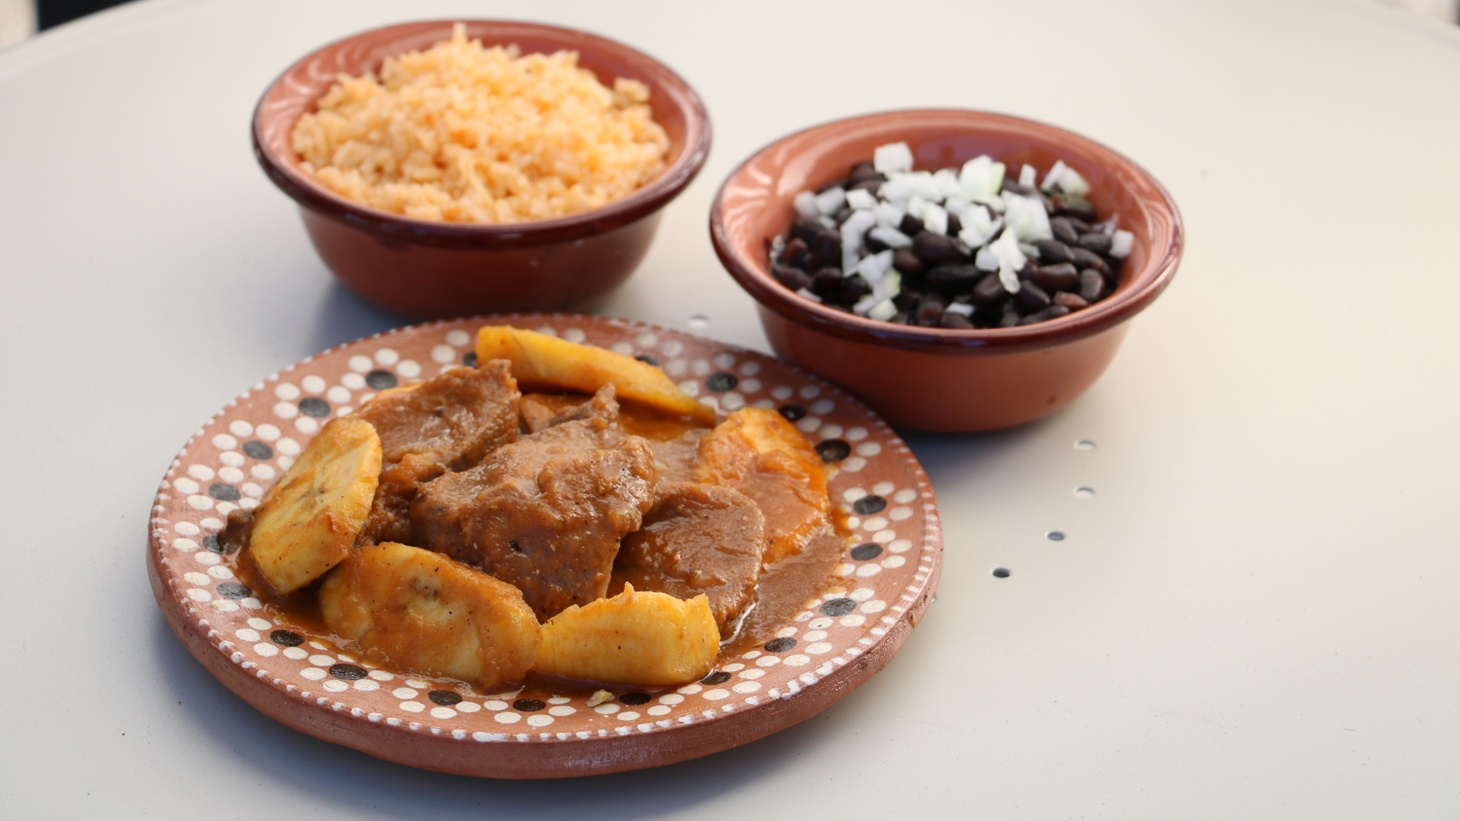 Lengua con plátanos is one of the many regional dishes served by Chef Maria Elena Lorenzo at Tamales Elena in Bell Gardens.